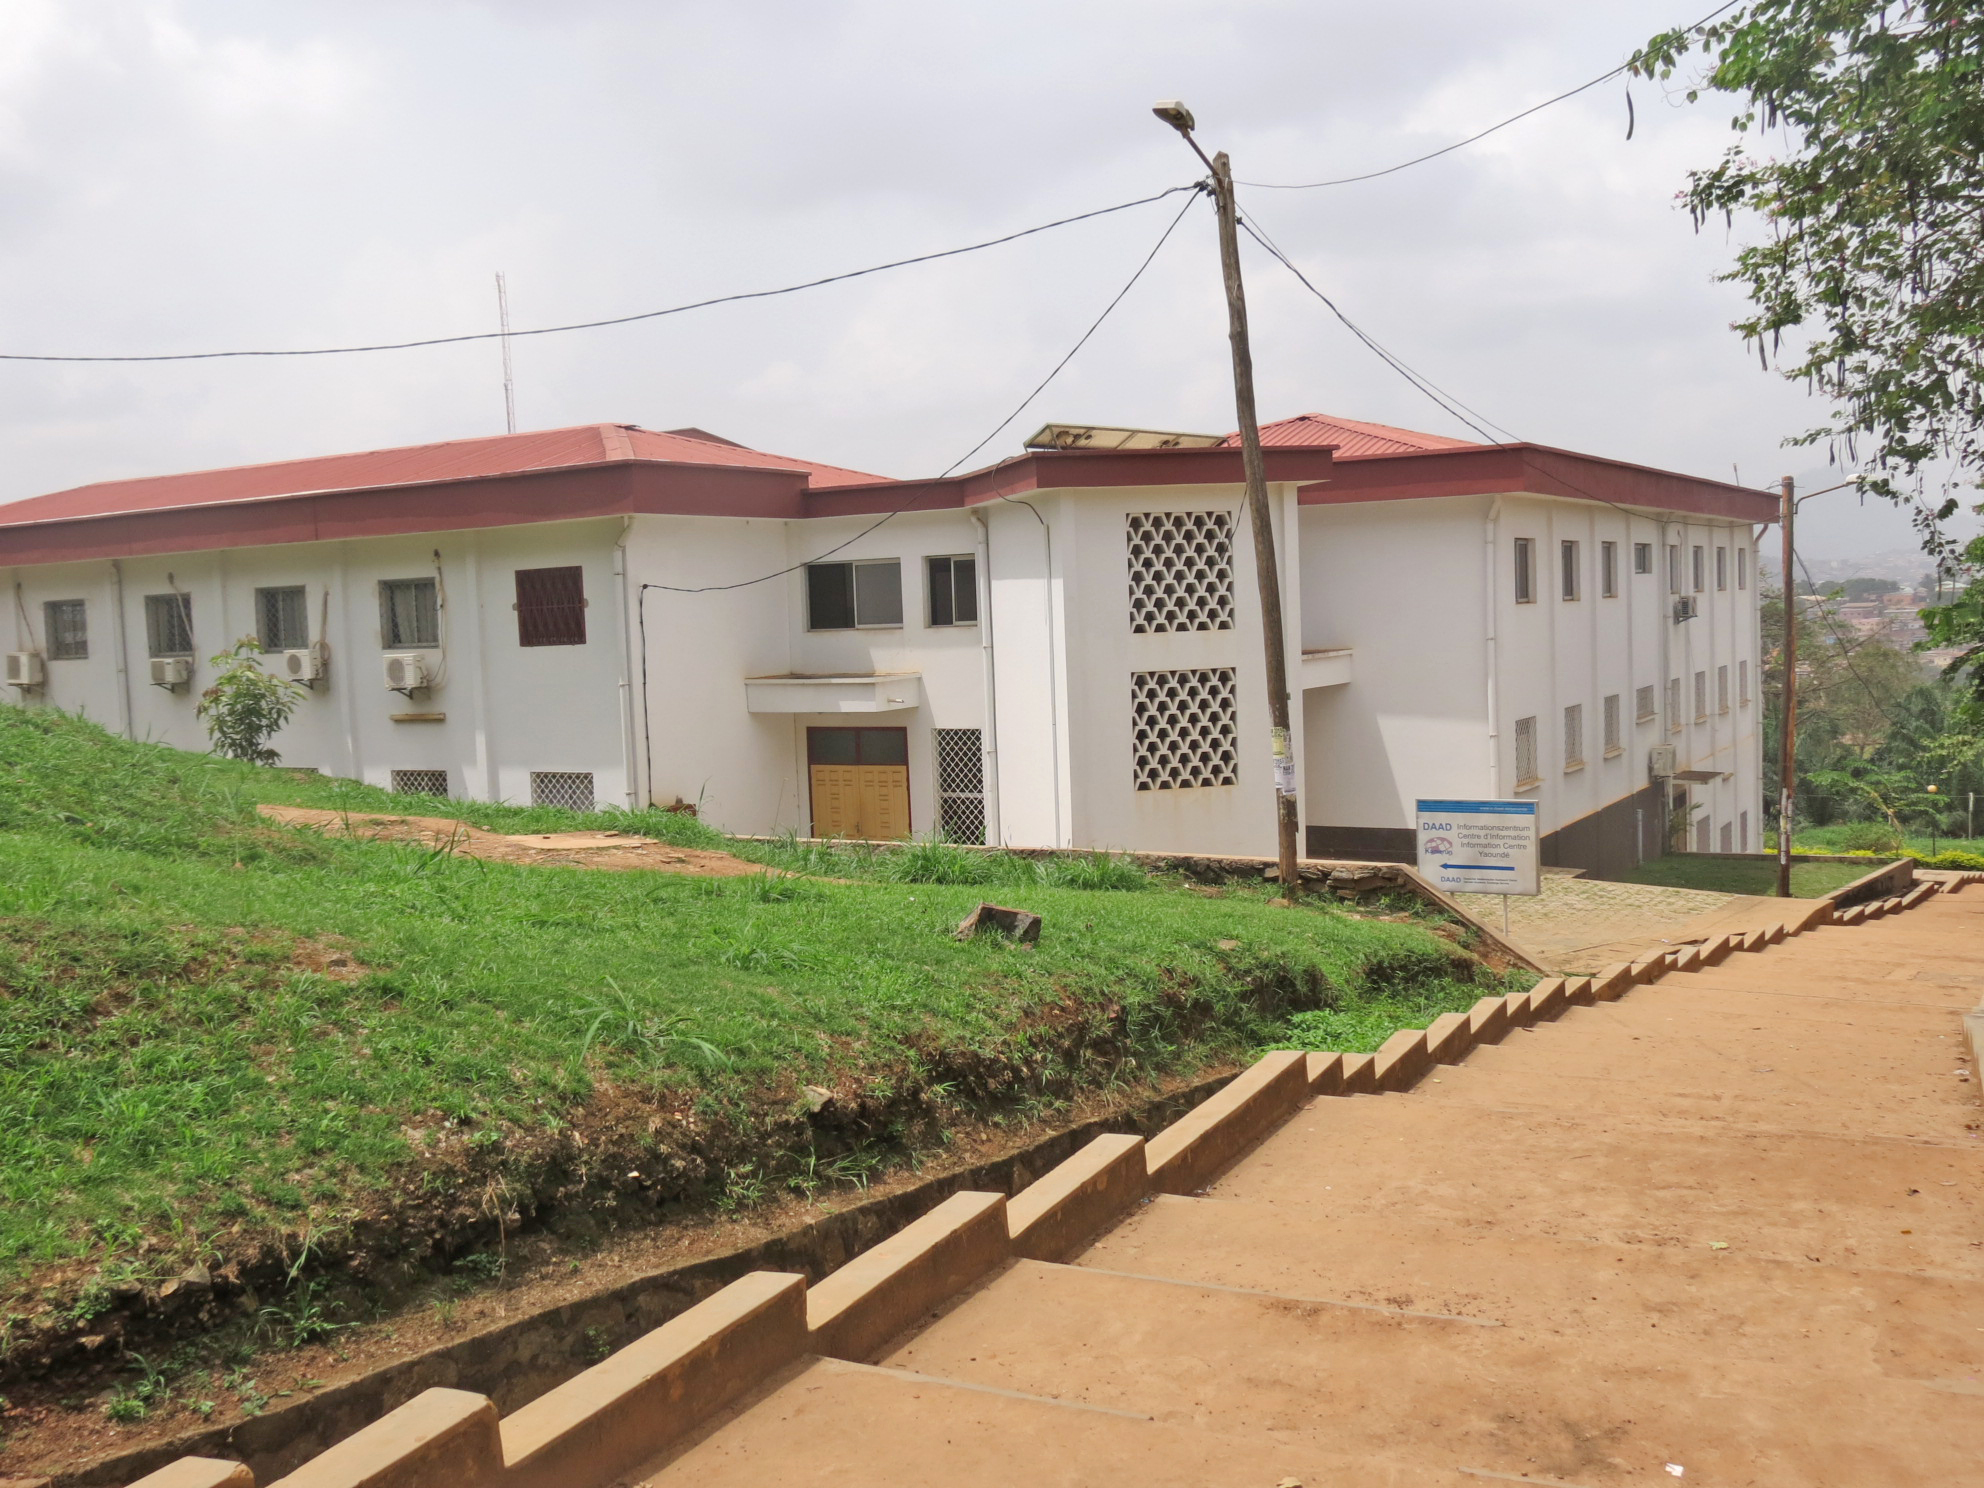 File:daad offices in yaoundé on ngoa ekelle campus 2014.jpg